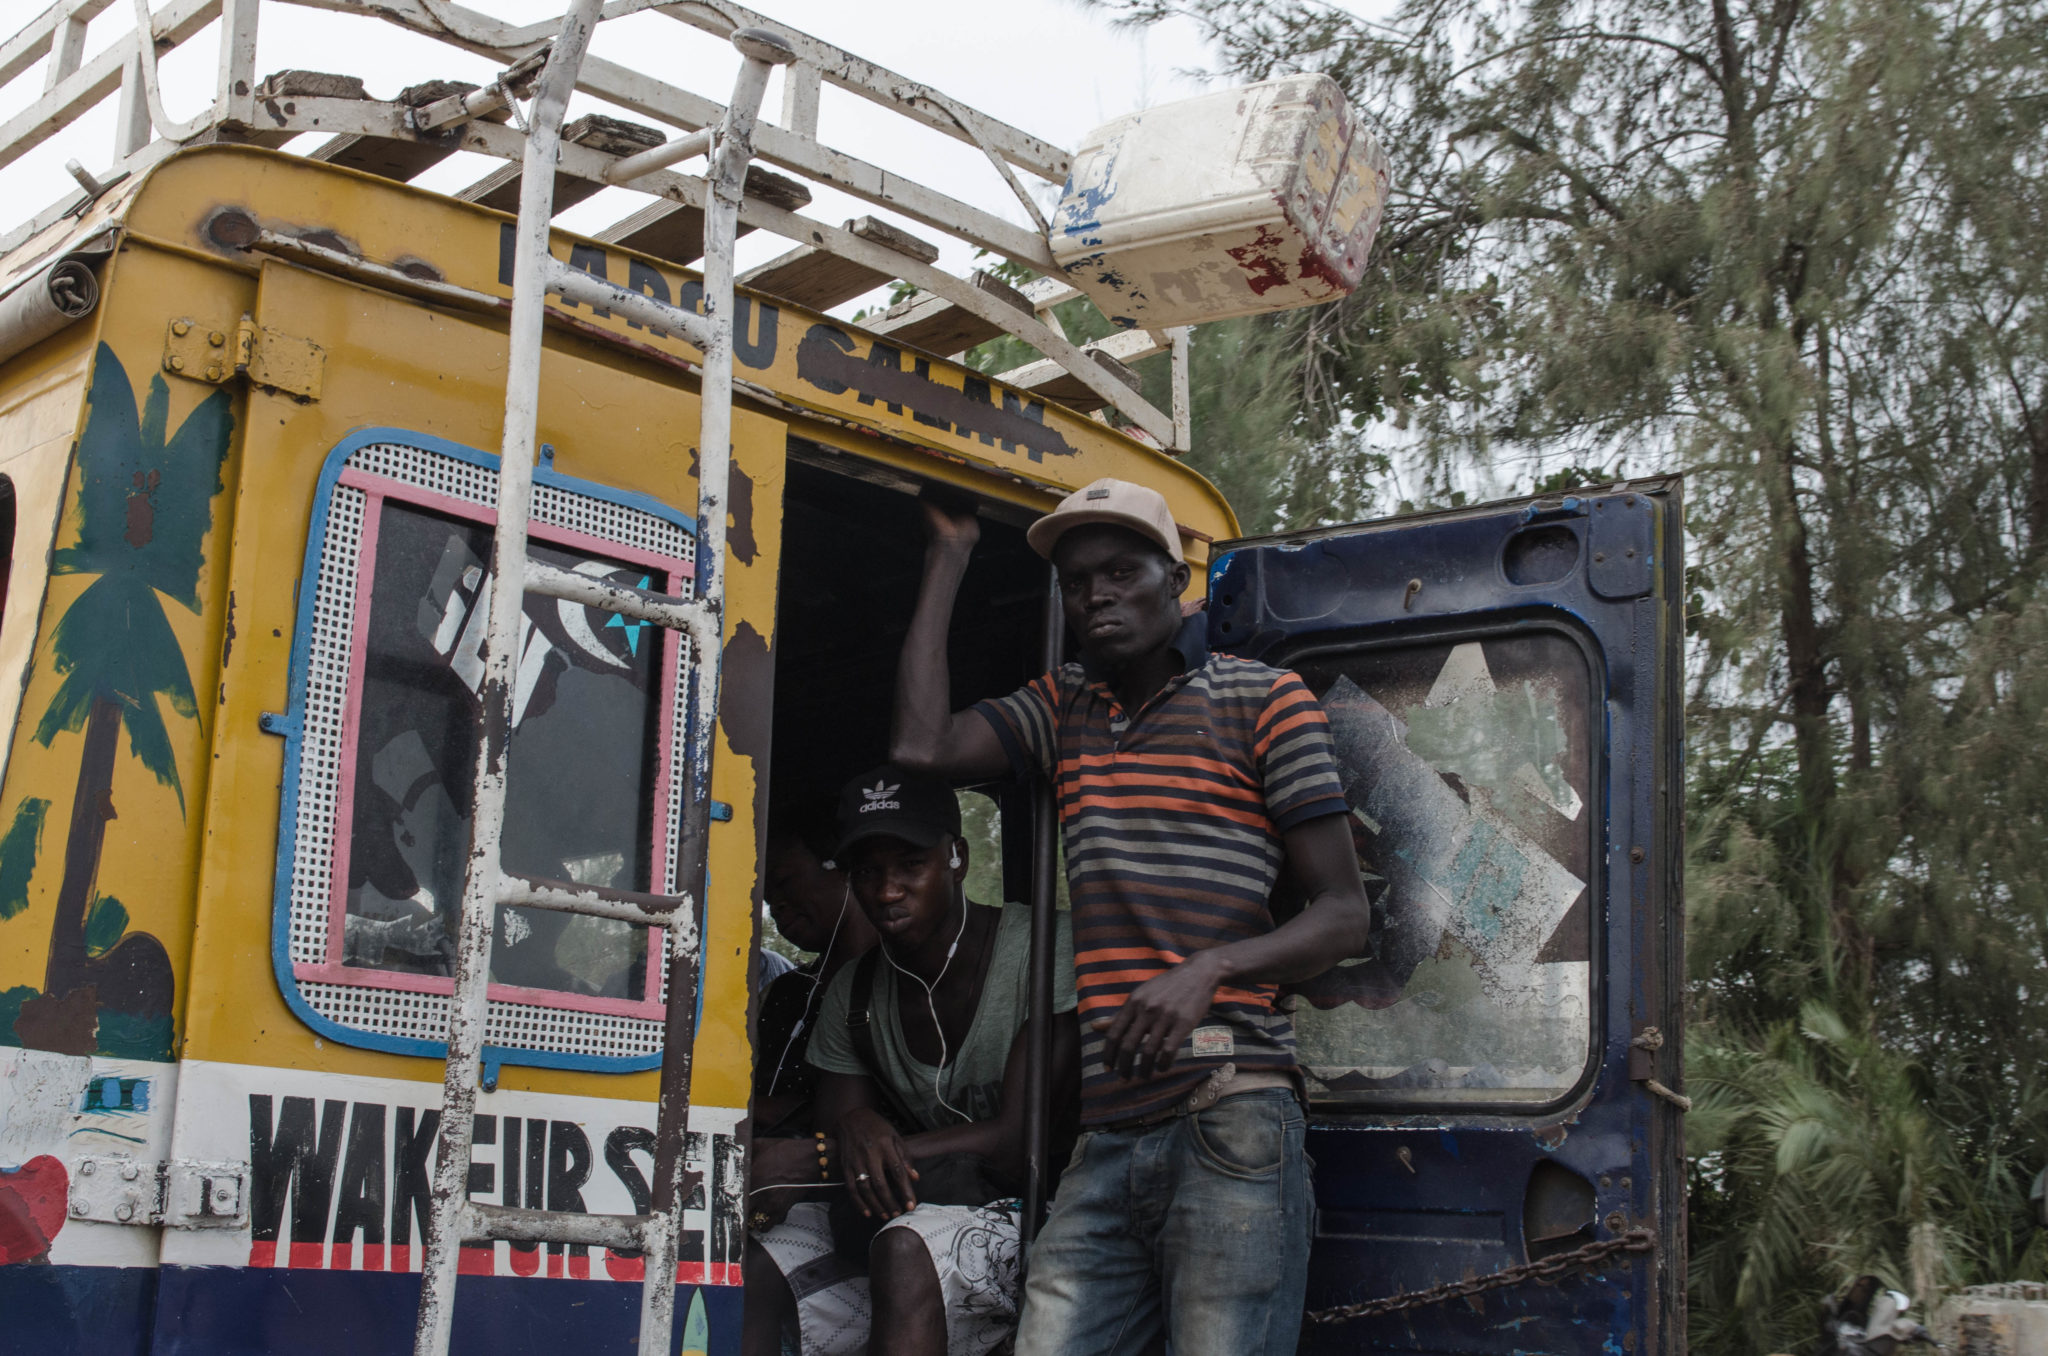 Senegal Travel Advice: Busses in Senegal are old, rusty, colourful and charming.